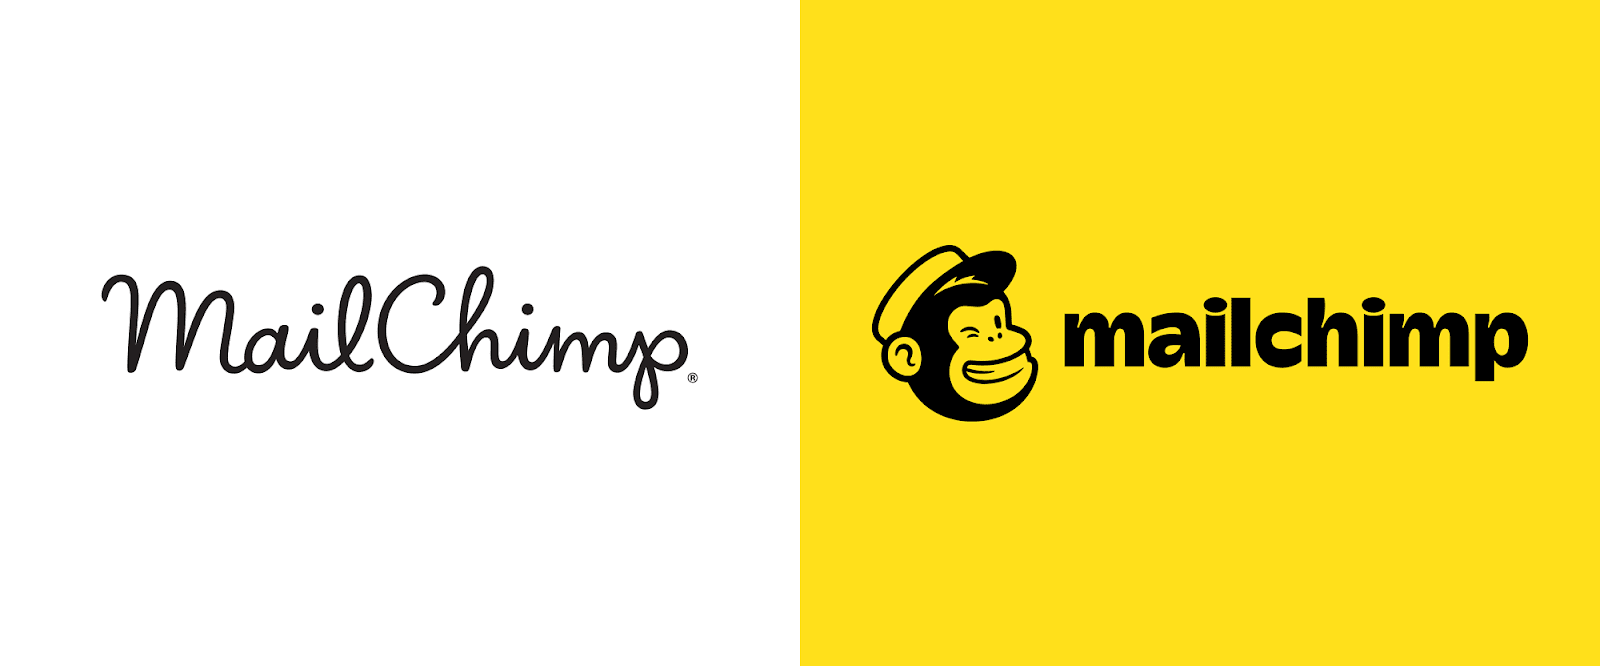 Former MailChimp log in cursive, camel case on the left and new, lowercase sans-serif logo on the right.